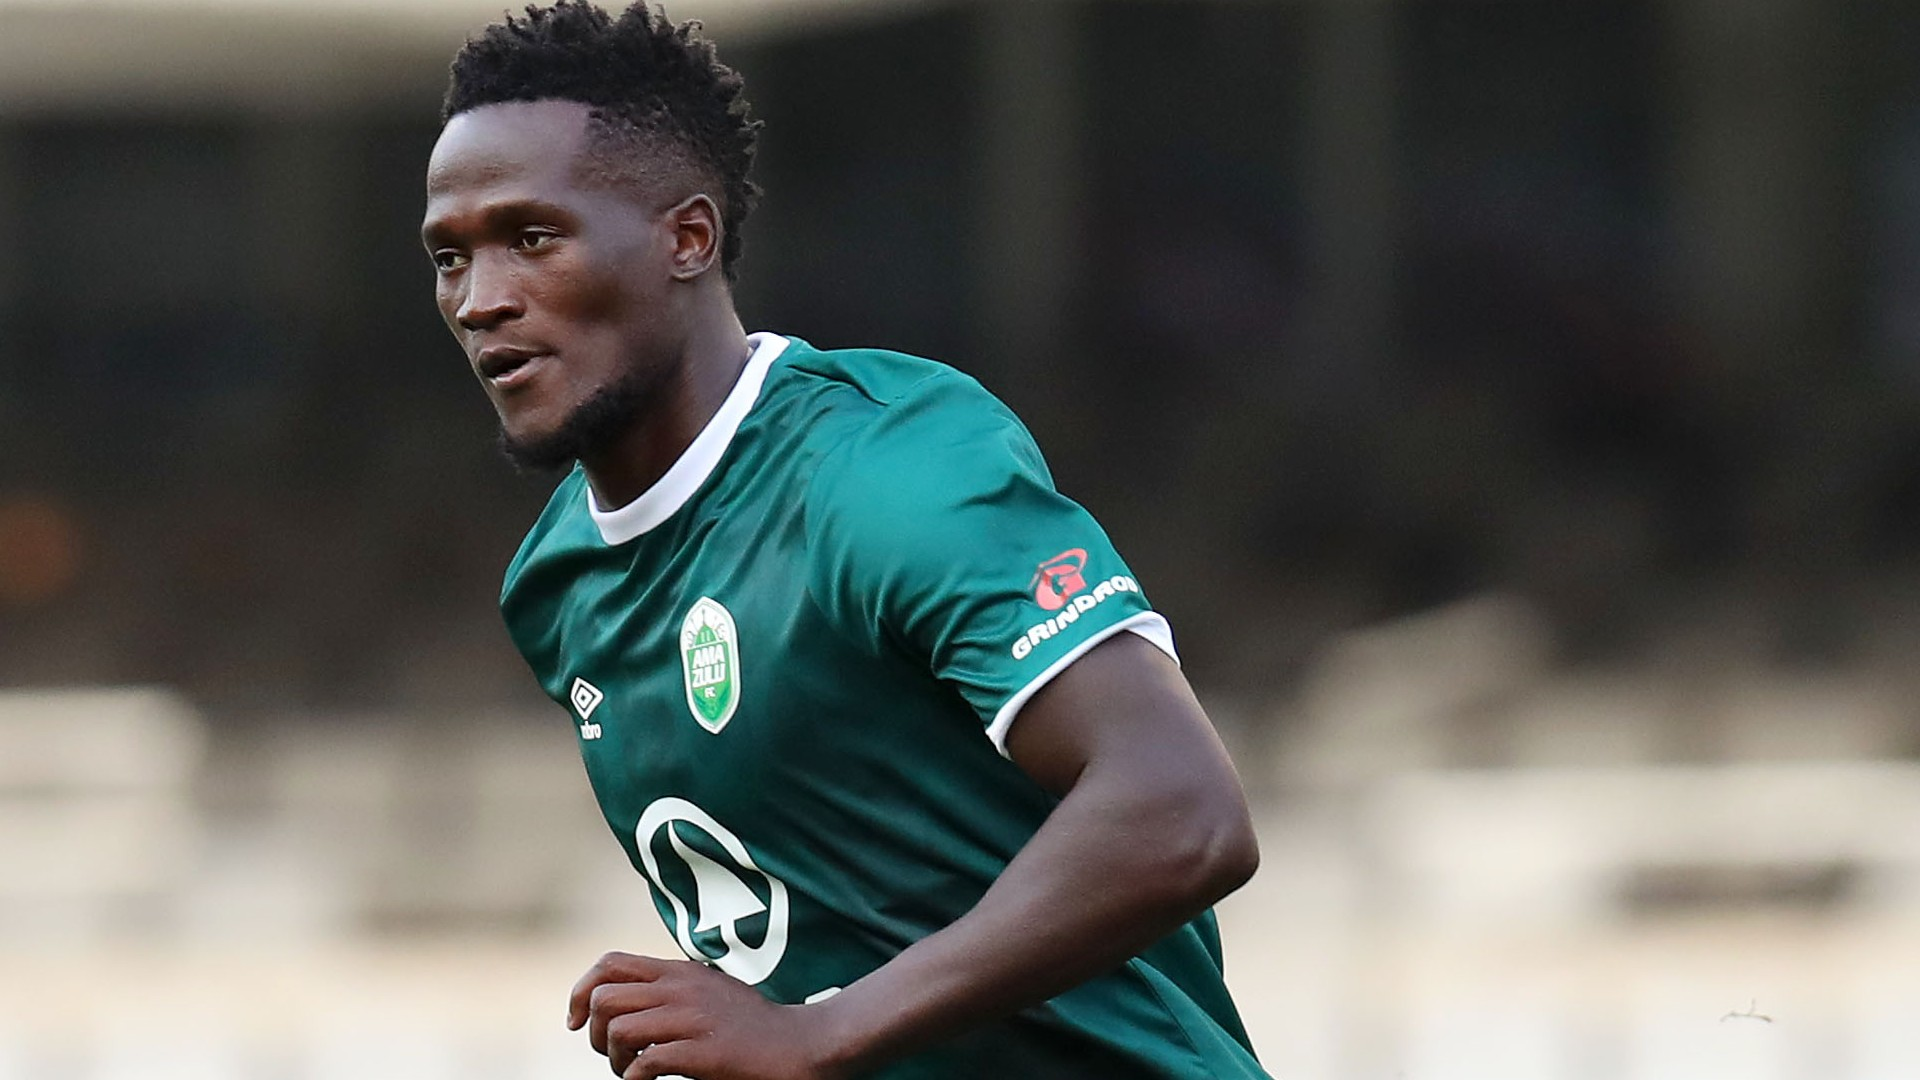 Ex-Kaizer Chiefs star Mthembu inspires AmaZulu FC to Caf Champions League second round